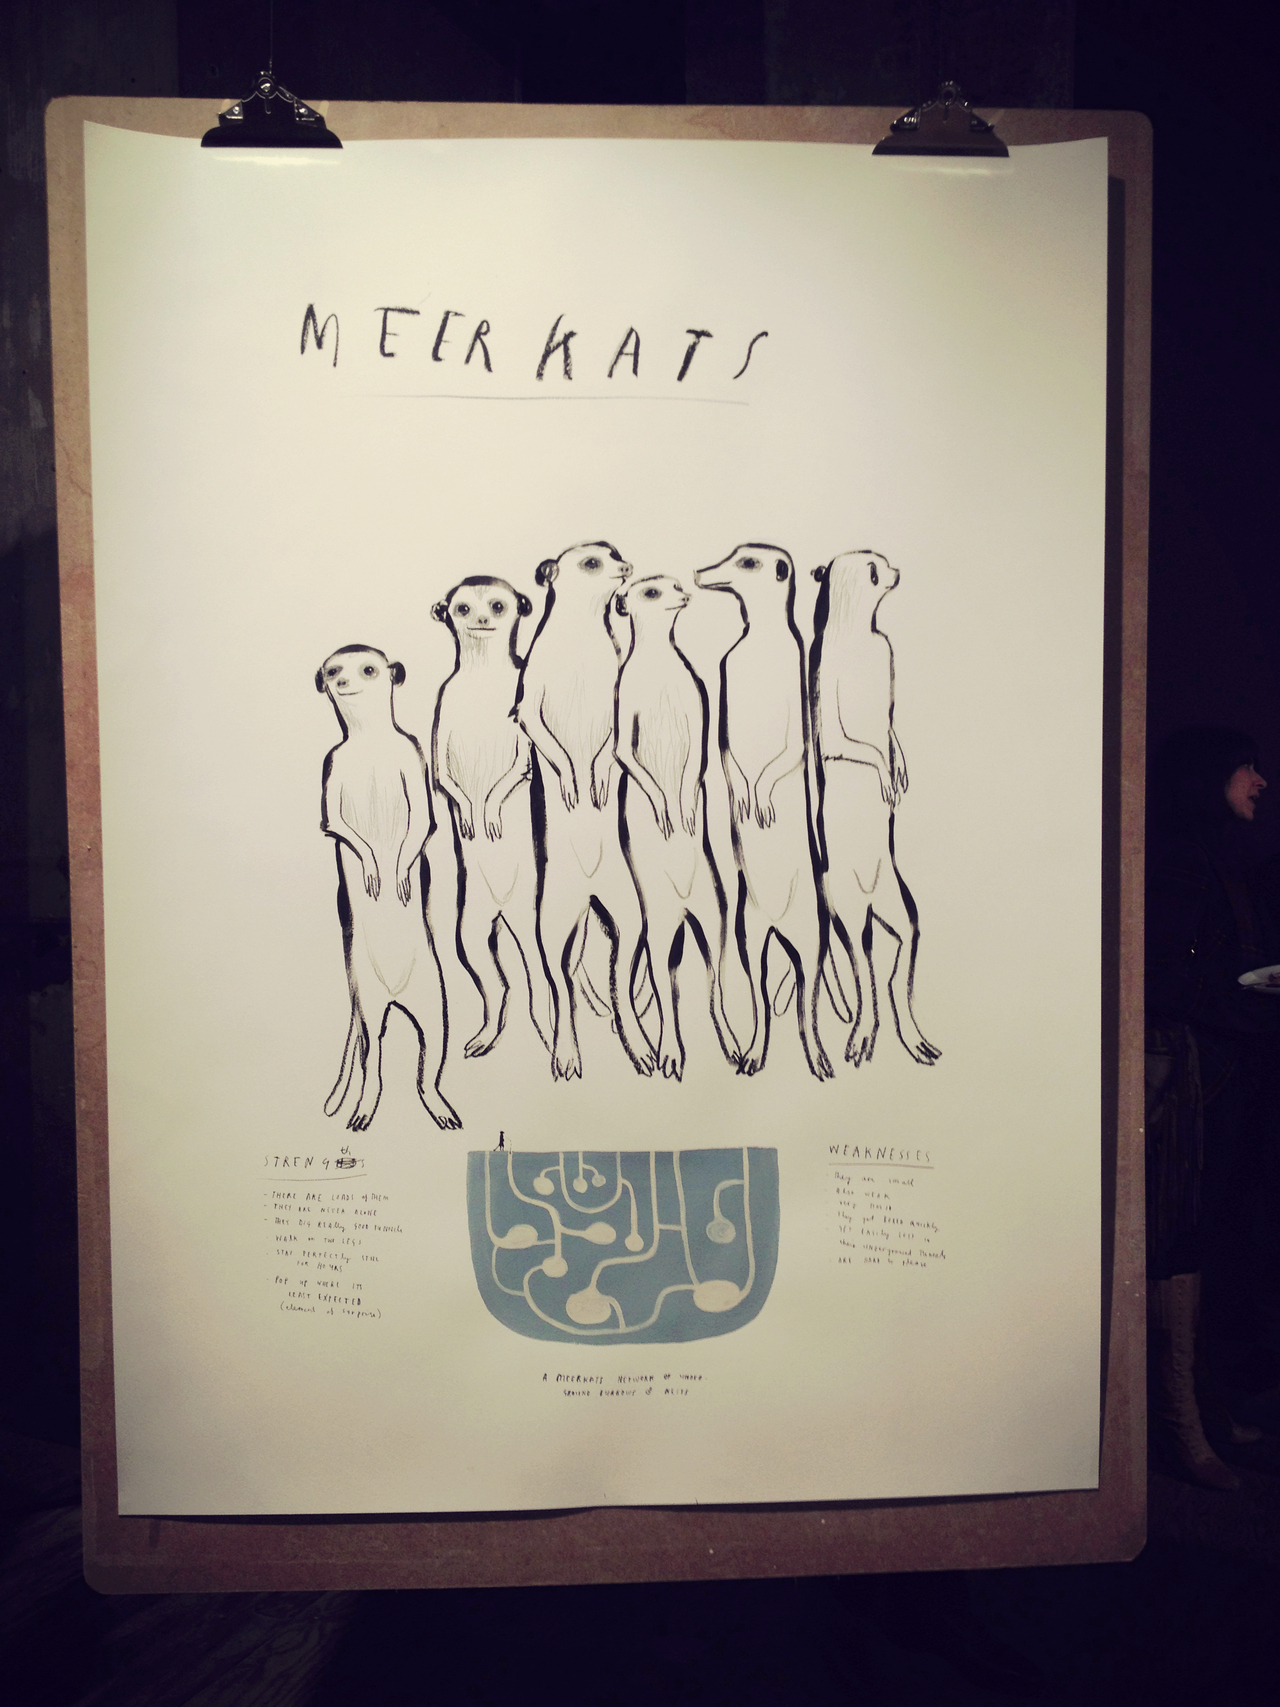 Meetkats by Mul Holland Hwang #peppersearching #pepper #drawings #art #meerkats #clipboard